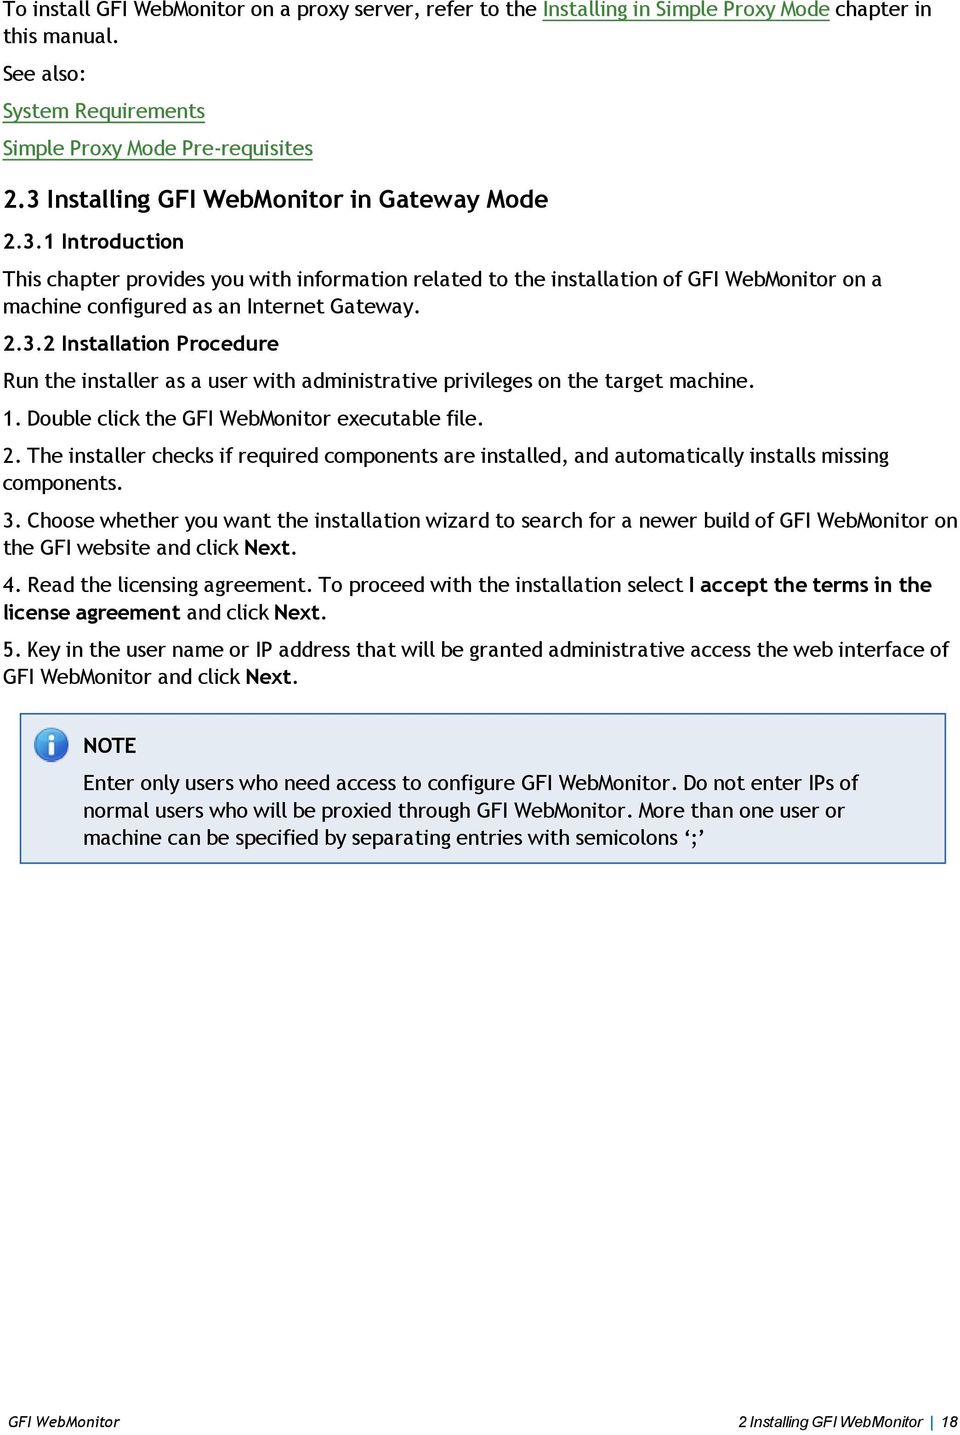 2.3.2 Installation Procedure Run the installer as a user with  administrative privileges on the